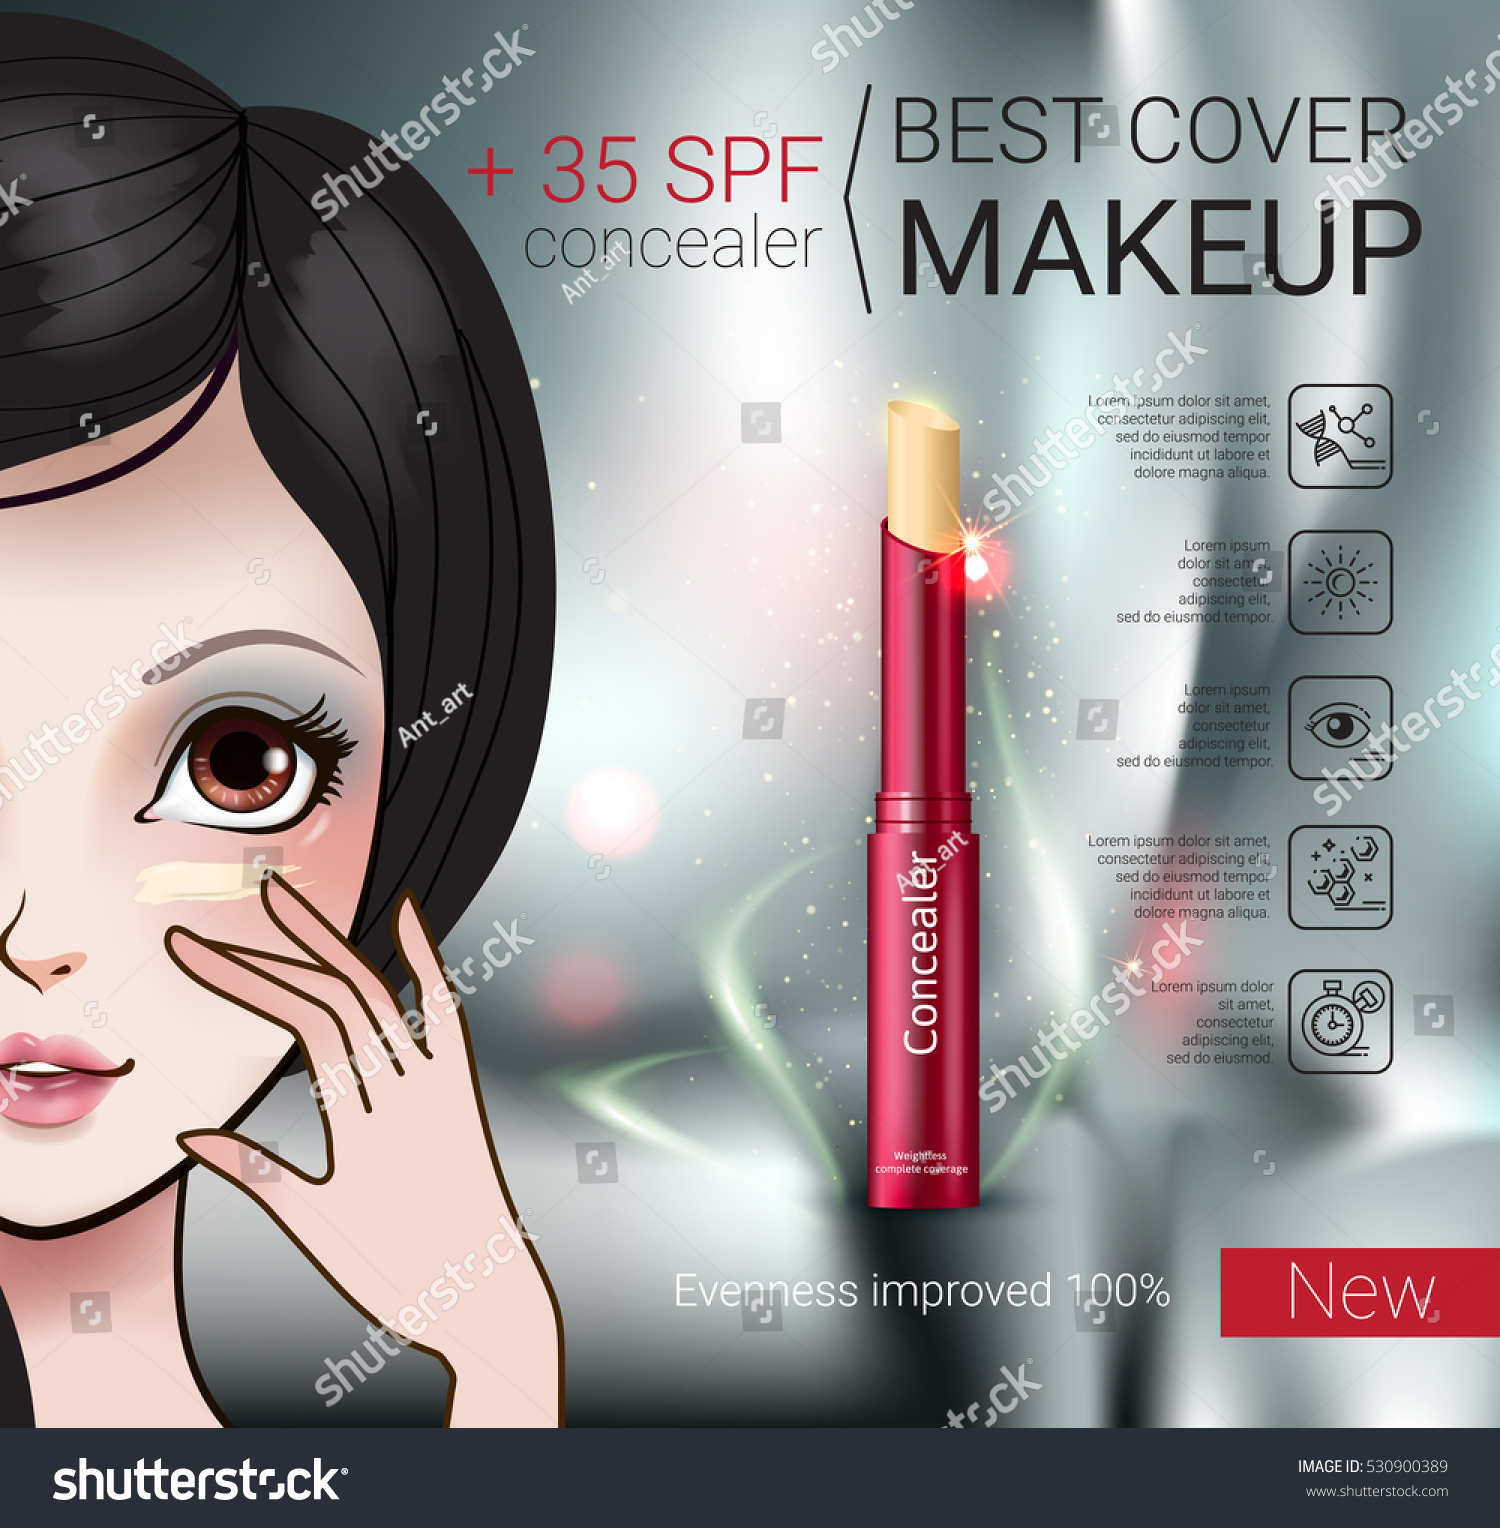 a59b169a106 Concealer Stick Ads Vector Illustration Manga Stock Vector (Royalty ...